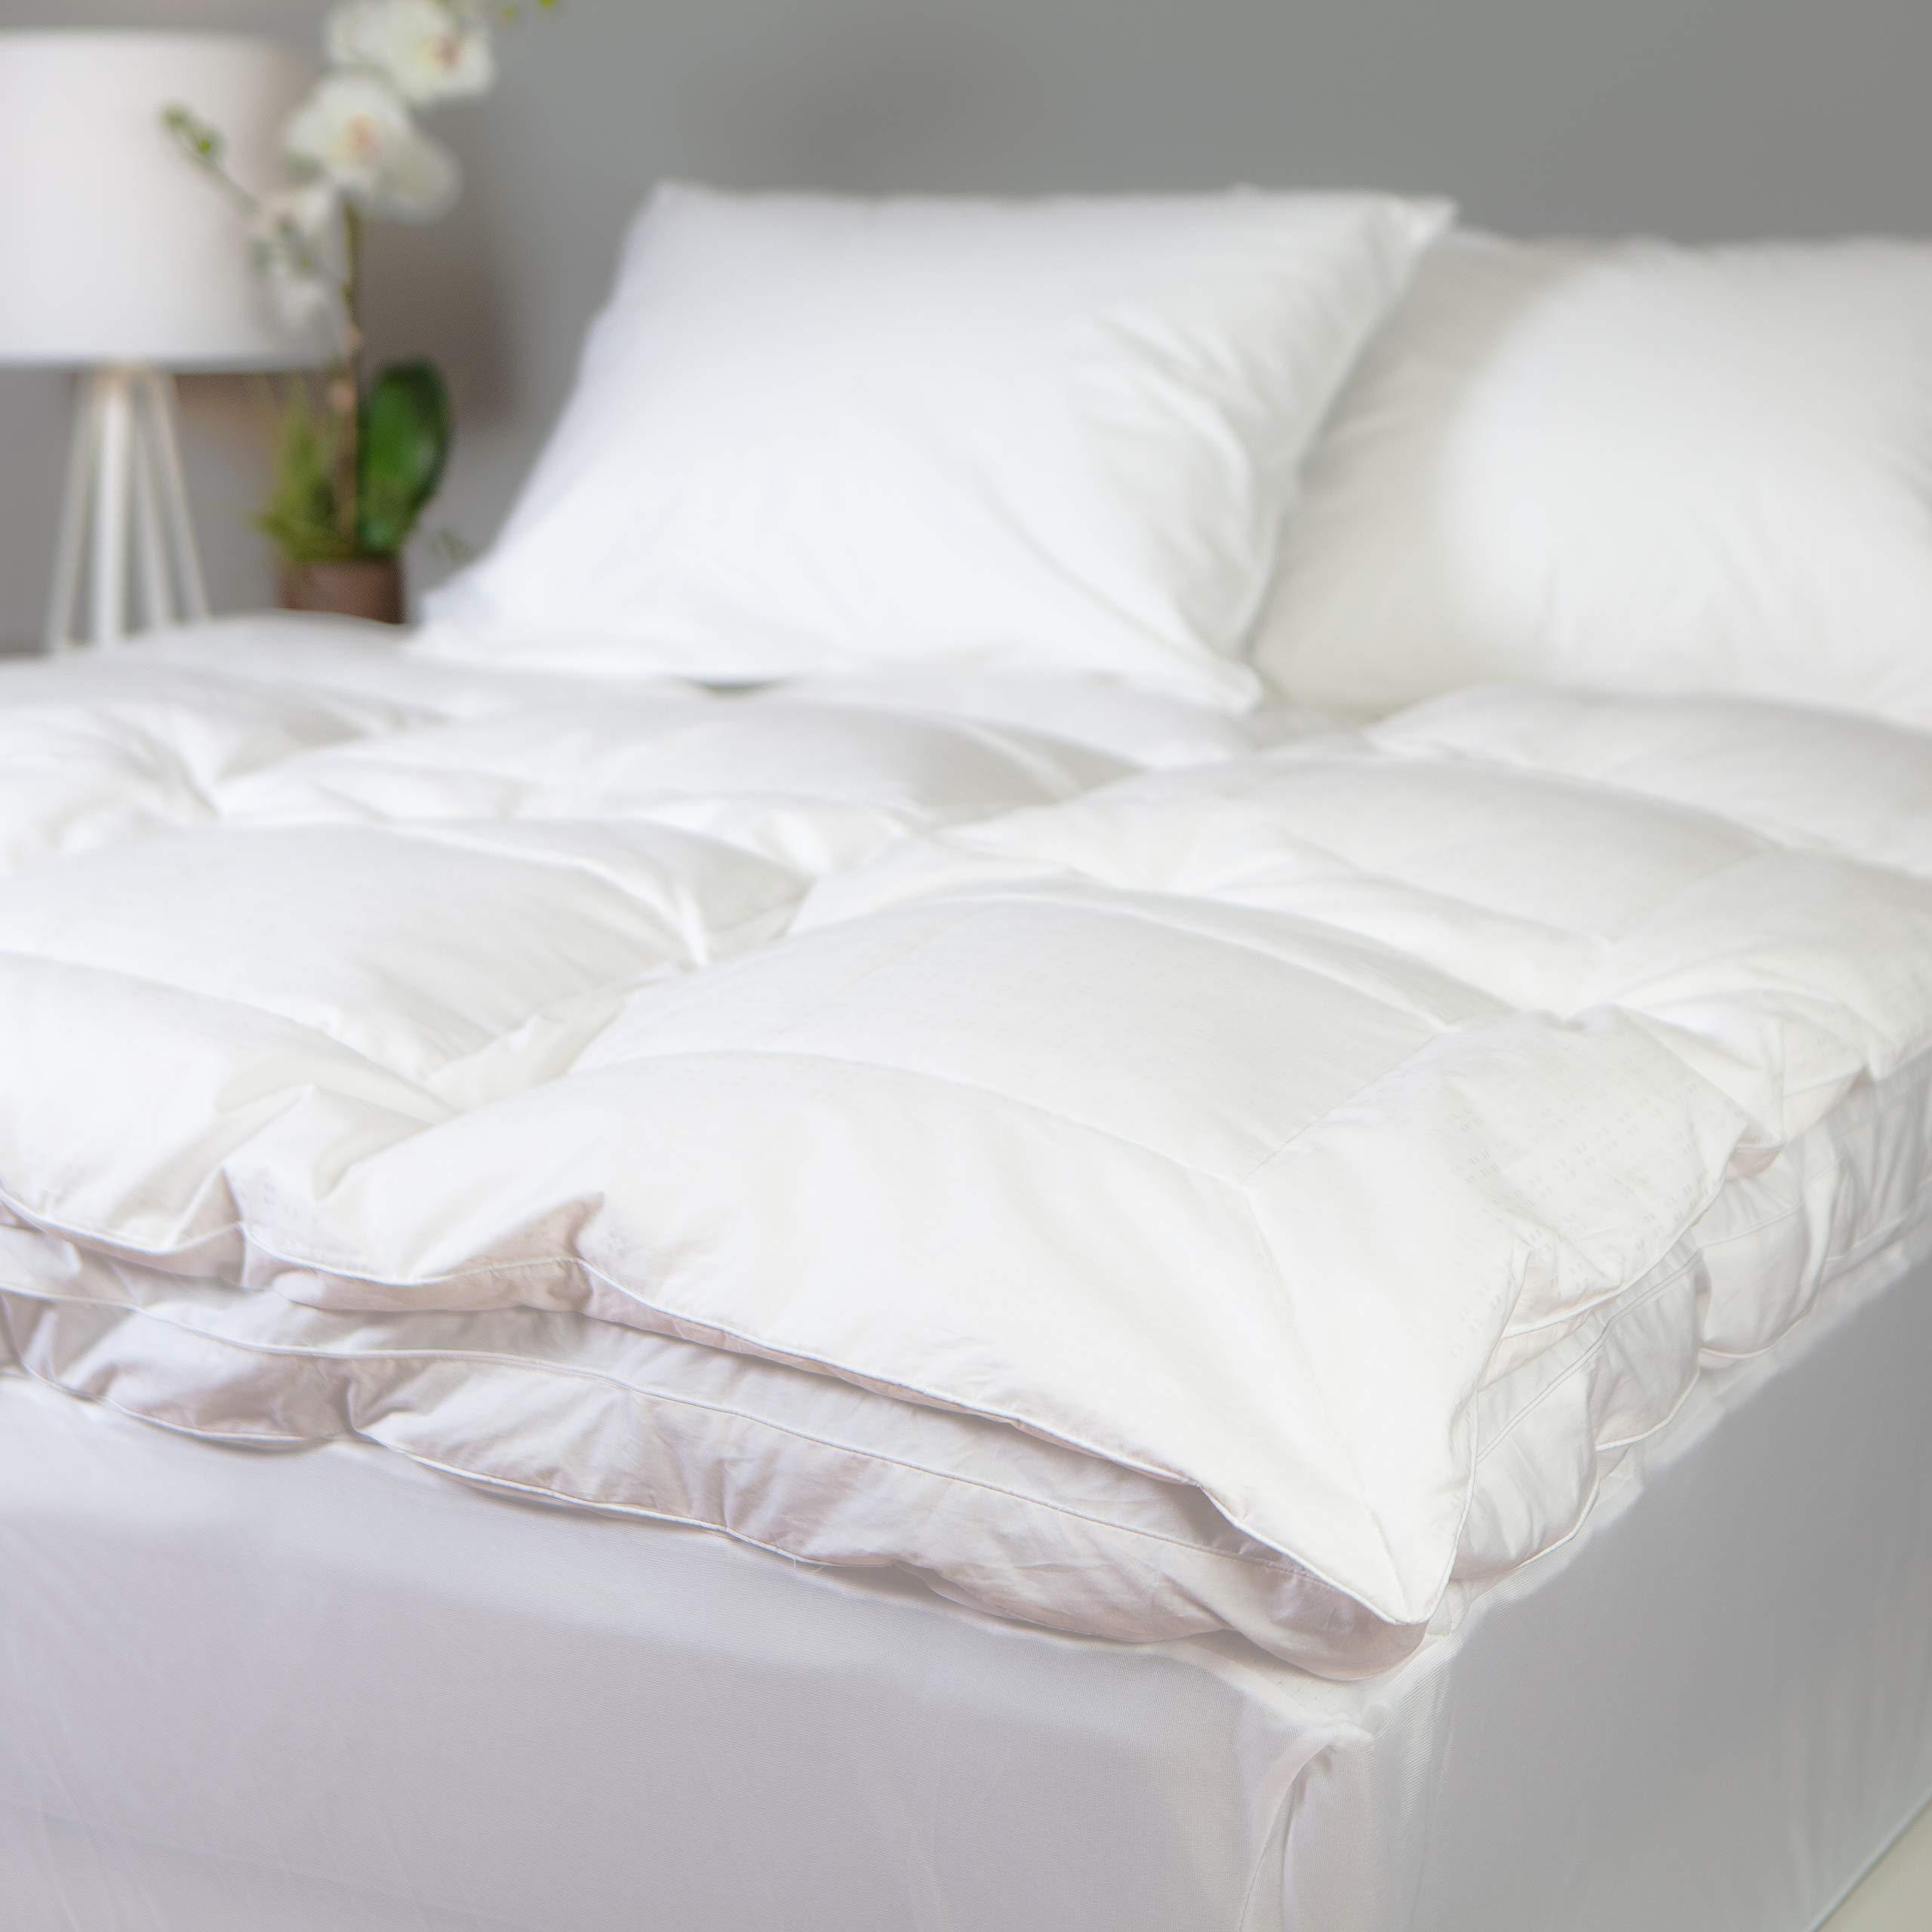 Allied Essentials Luxe 100% Cotton Goose Featherbed Mattress Topper, White, California King by Allied Essentials